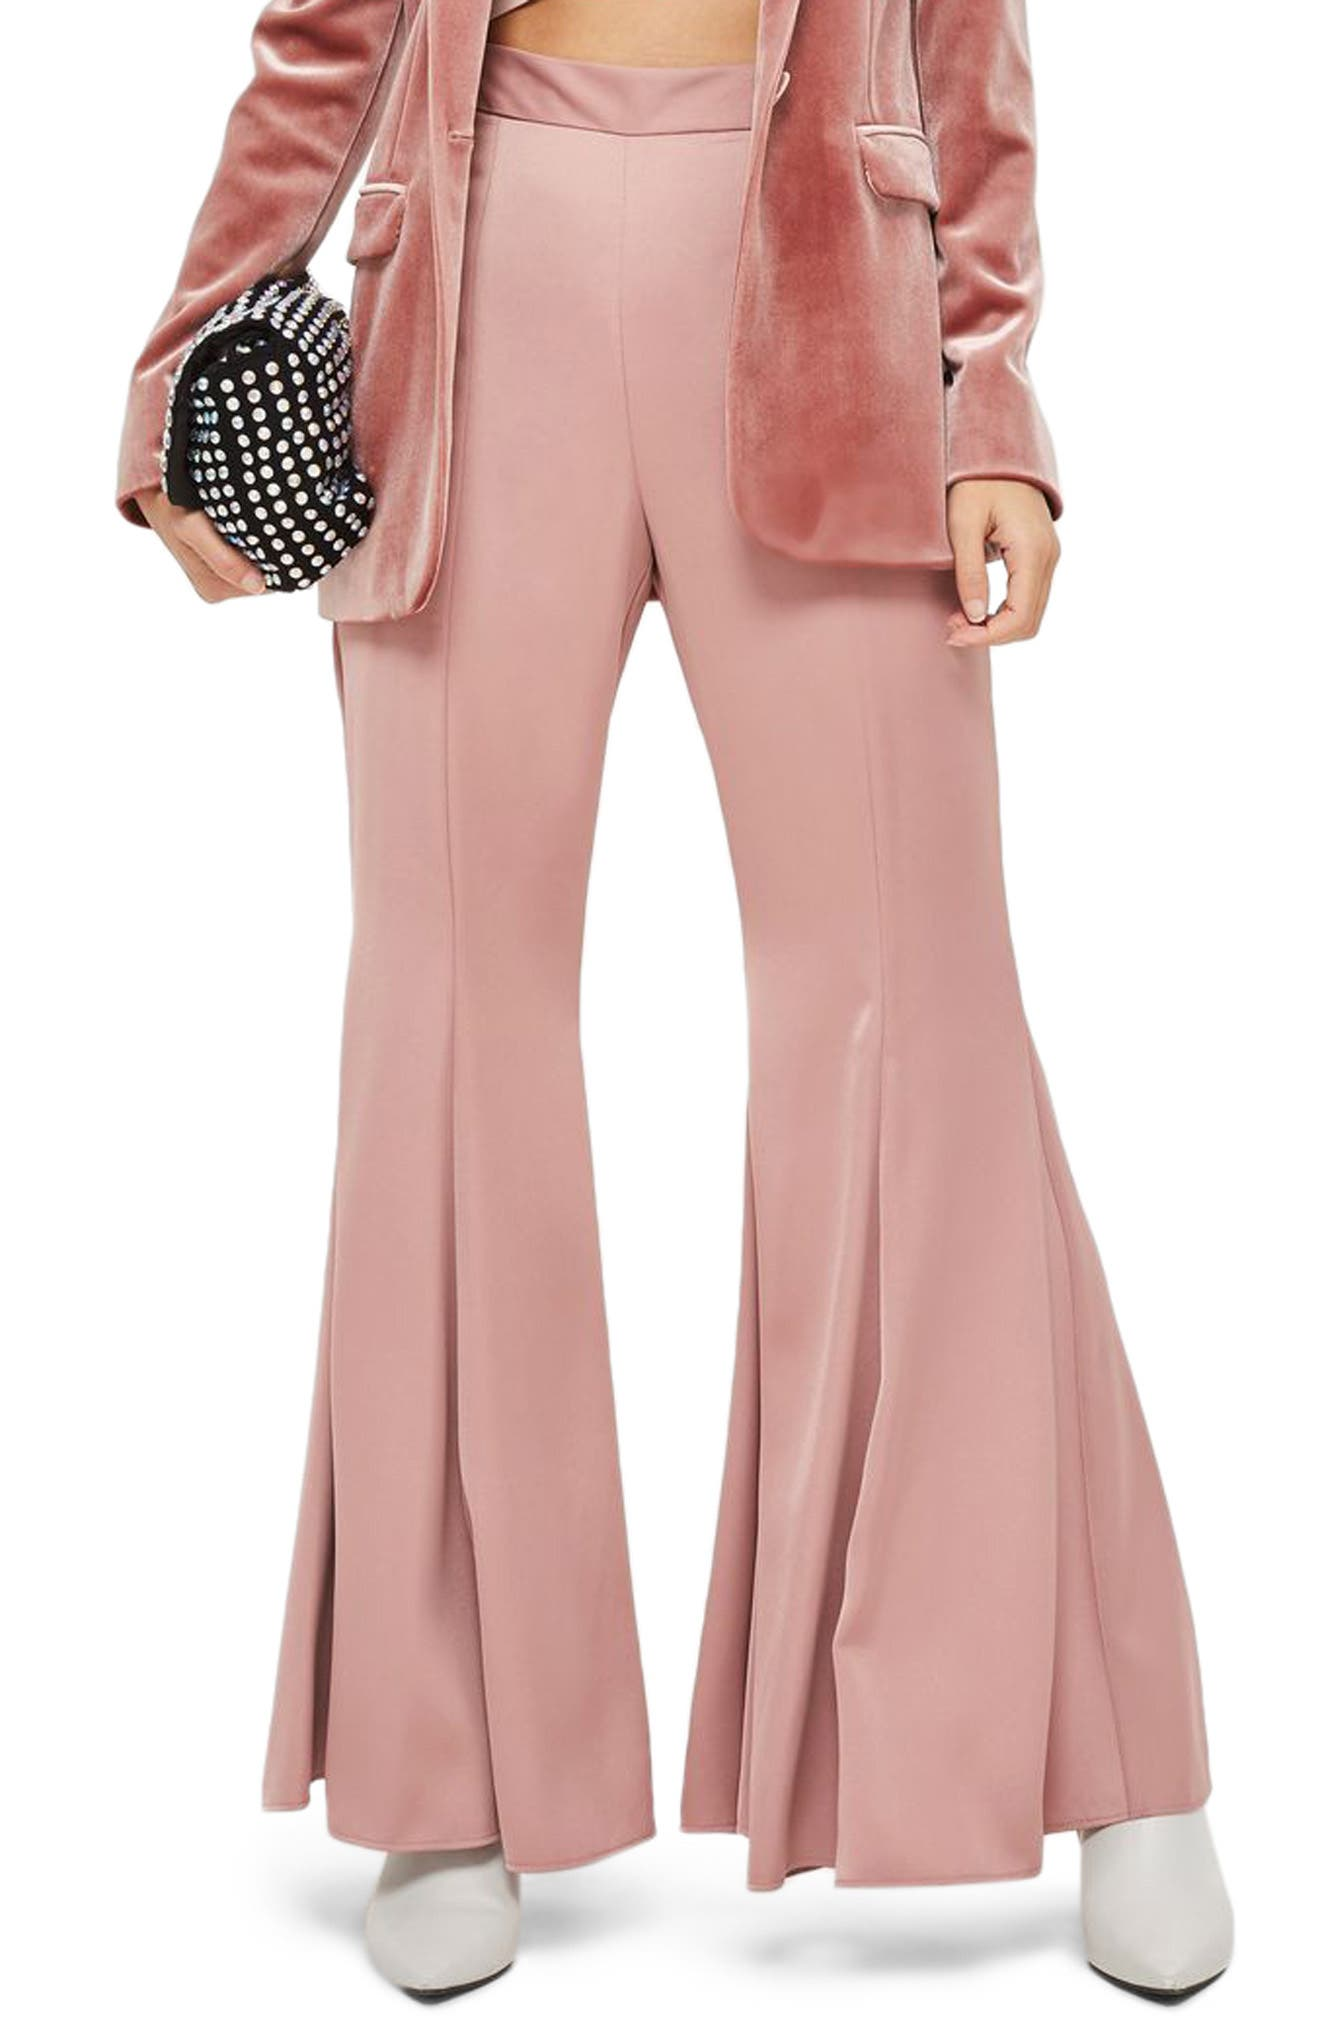 Topshop Satin Super Flare Trousers